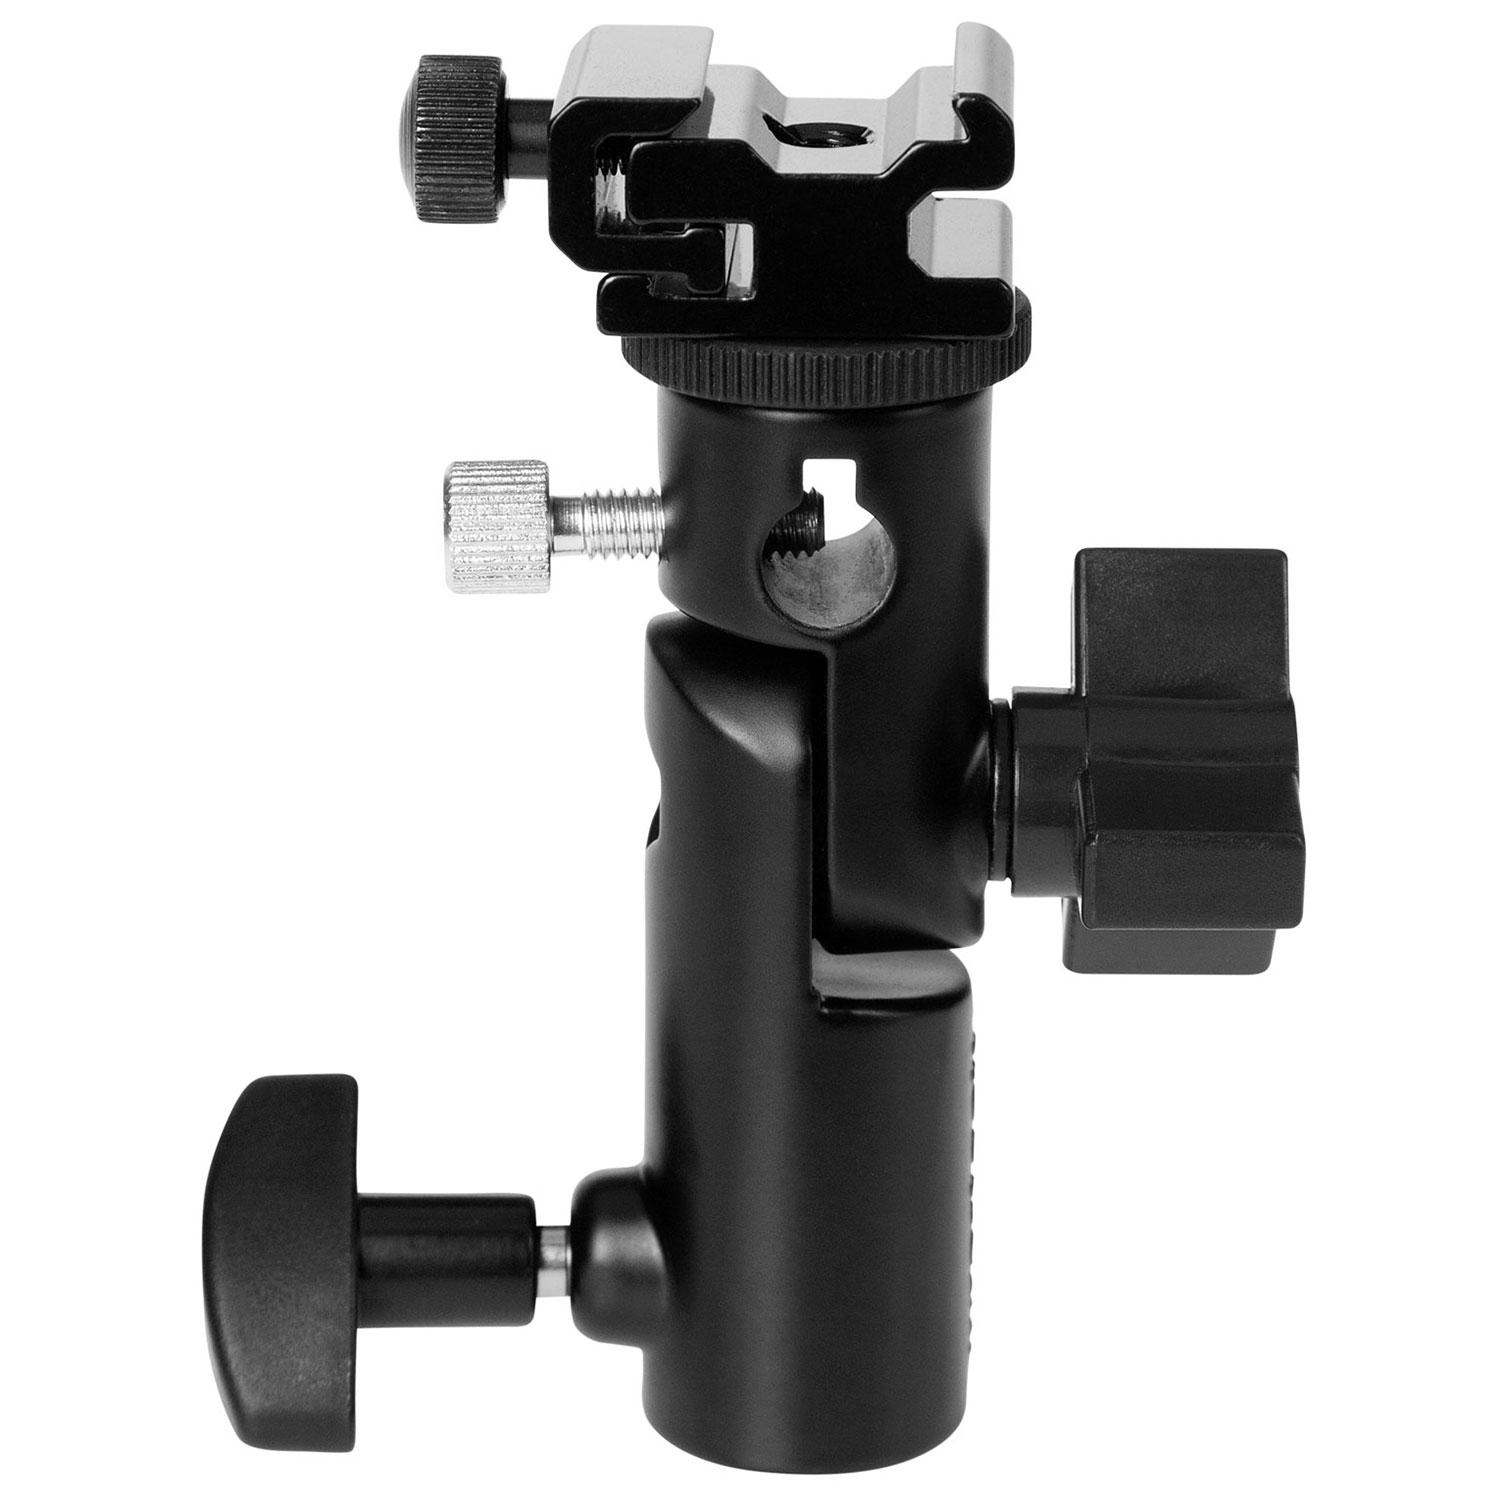 Adjustable Shoe Mount Speedlite Bracket